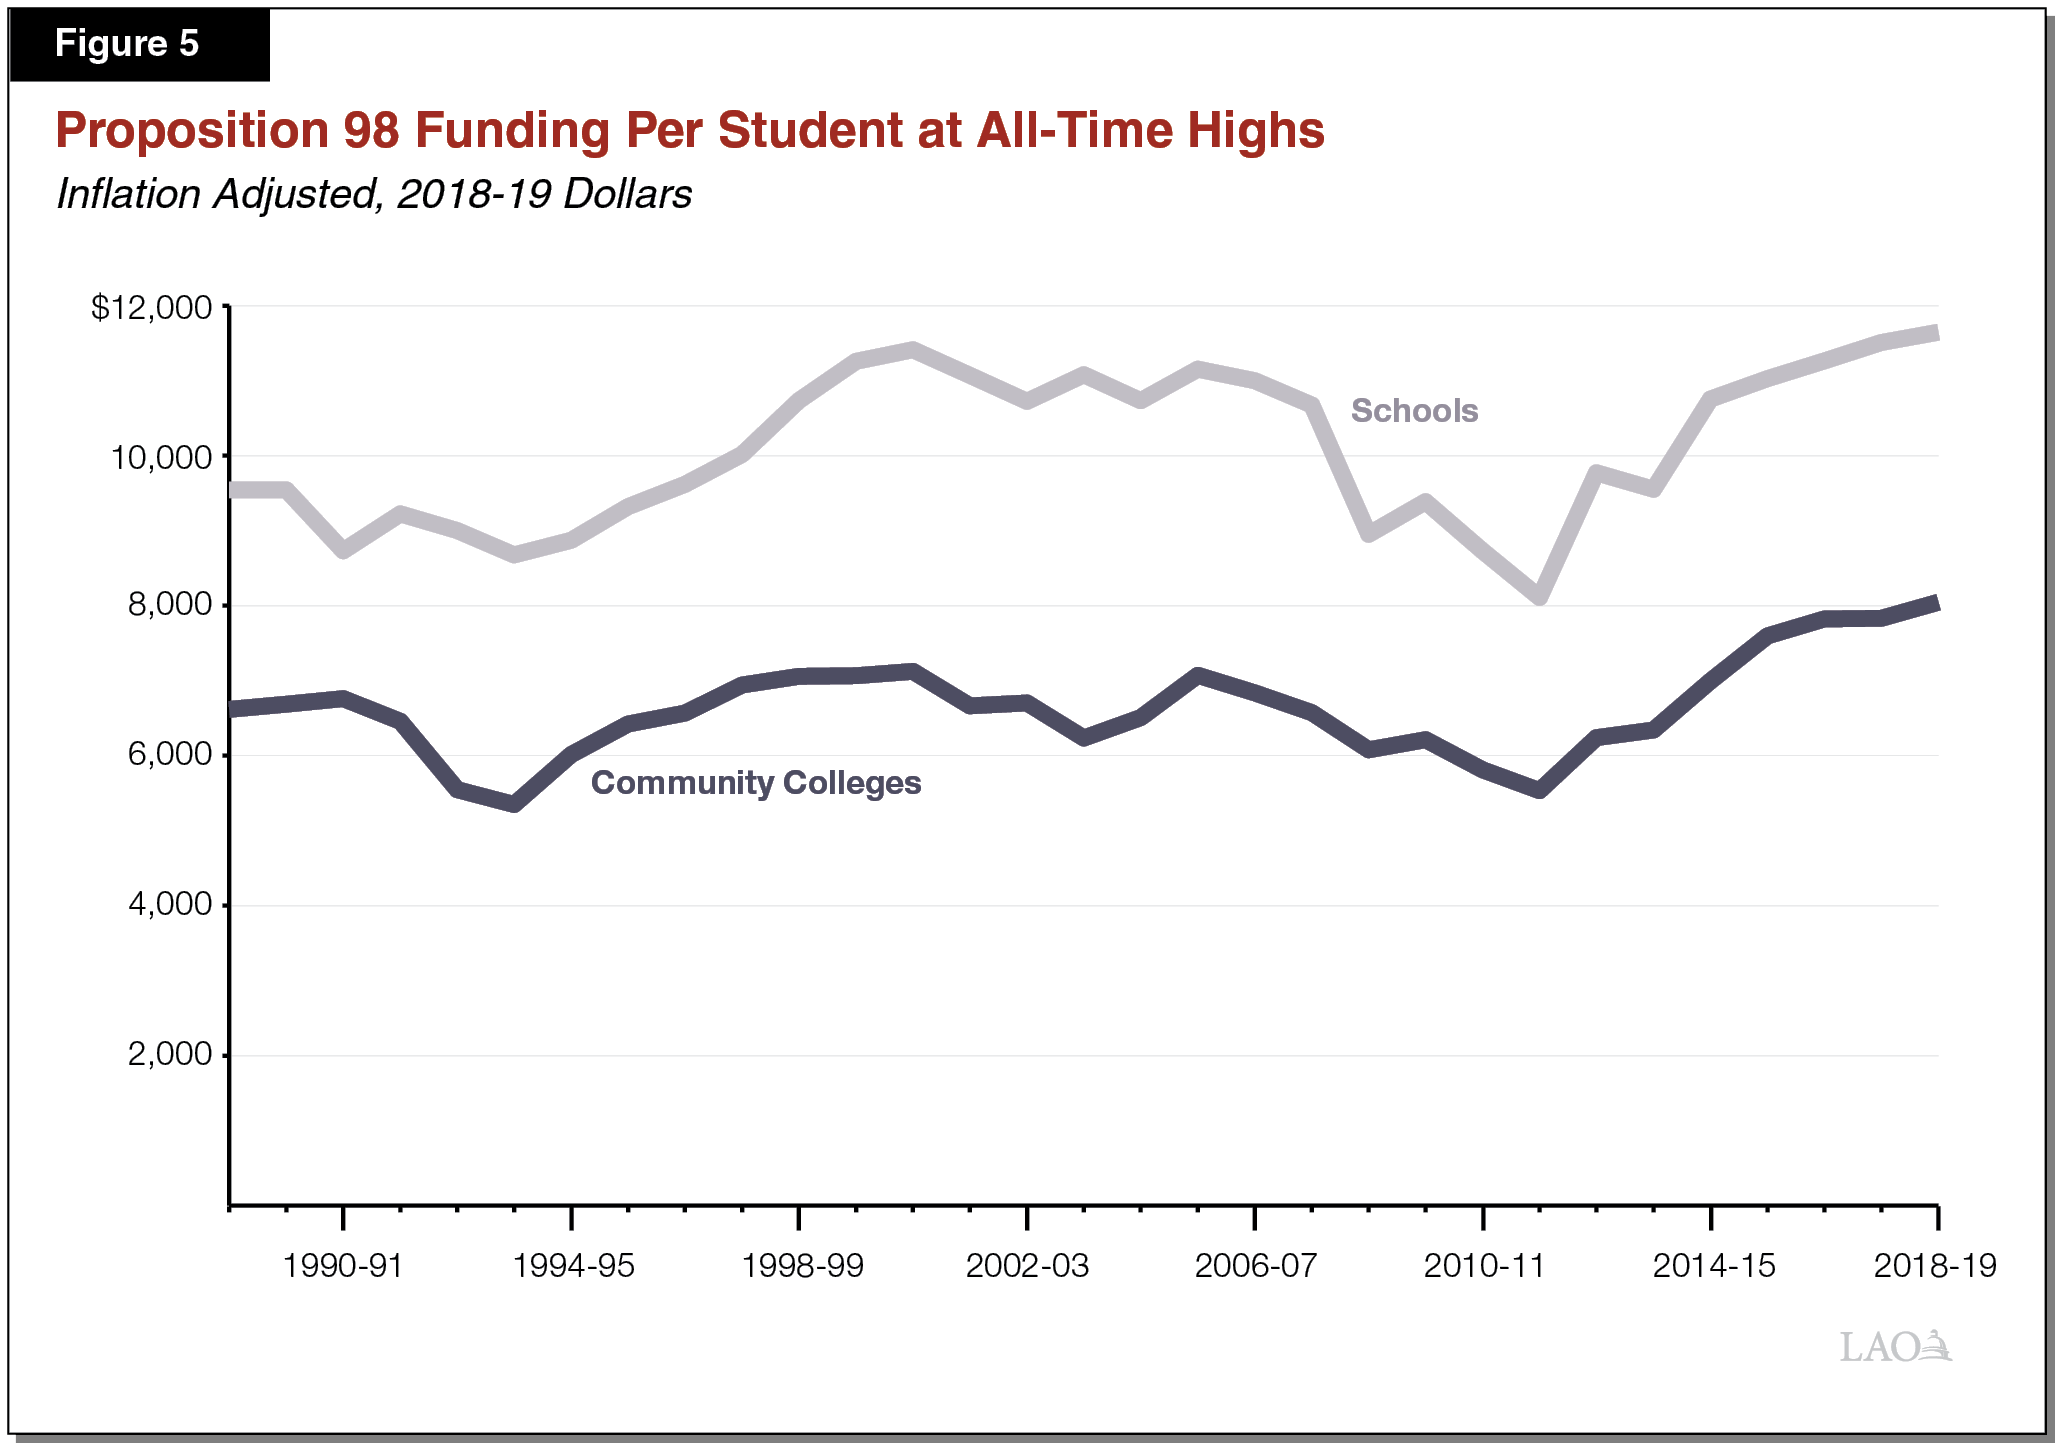 Figure 5 - Proposition 98 Funding Per Student at All-Time High